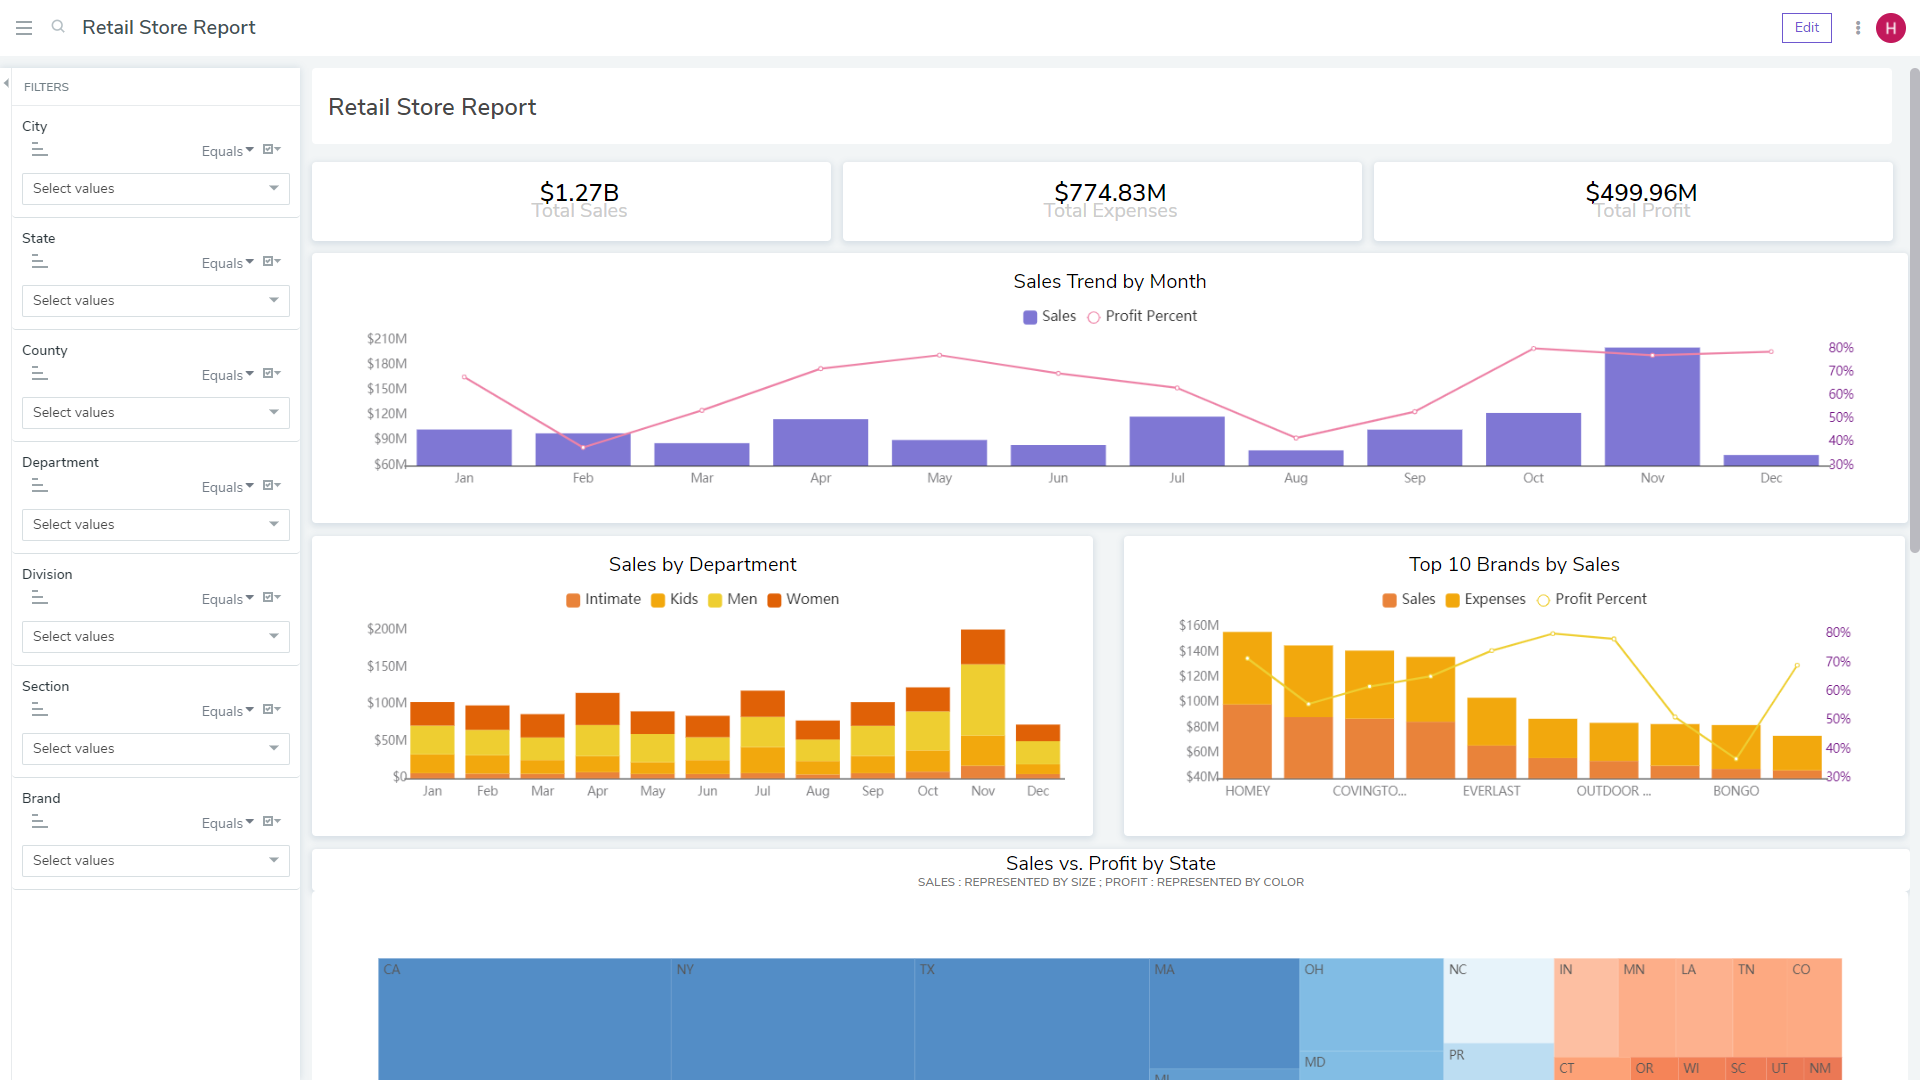 bipp's dashboards are interactive and can act like data applications. They drive quick and accurate decision-making as users can monitor and measure performance in real time and provide focus on organizational or team KPIs